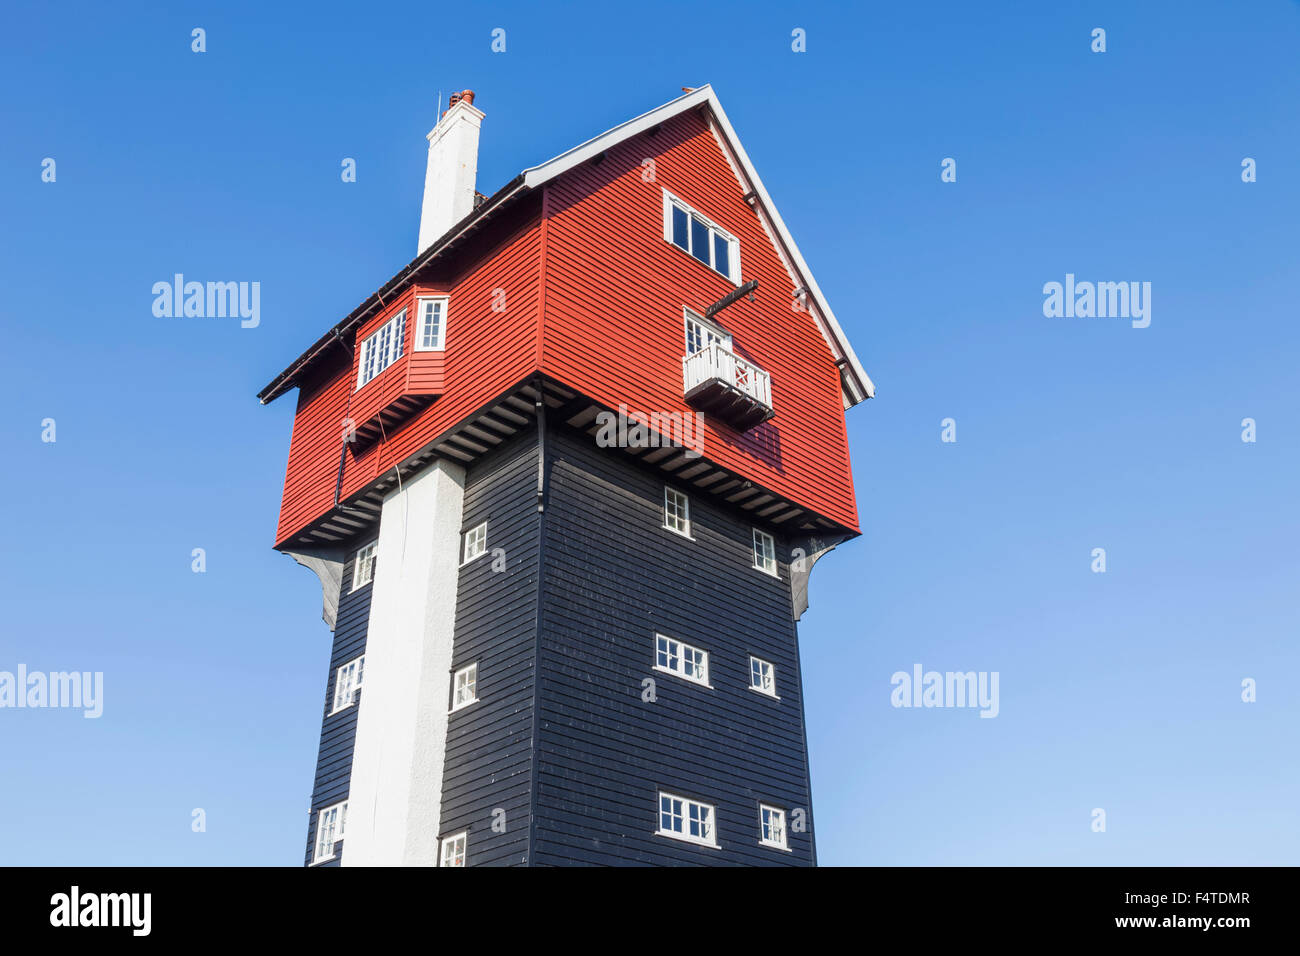 England, Suffolk, Thorpeness, House in The Clouds - Stock Image